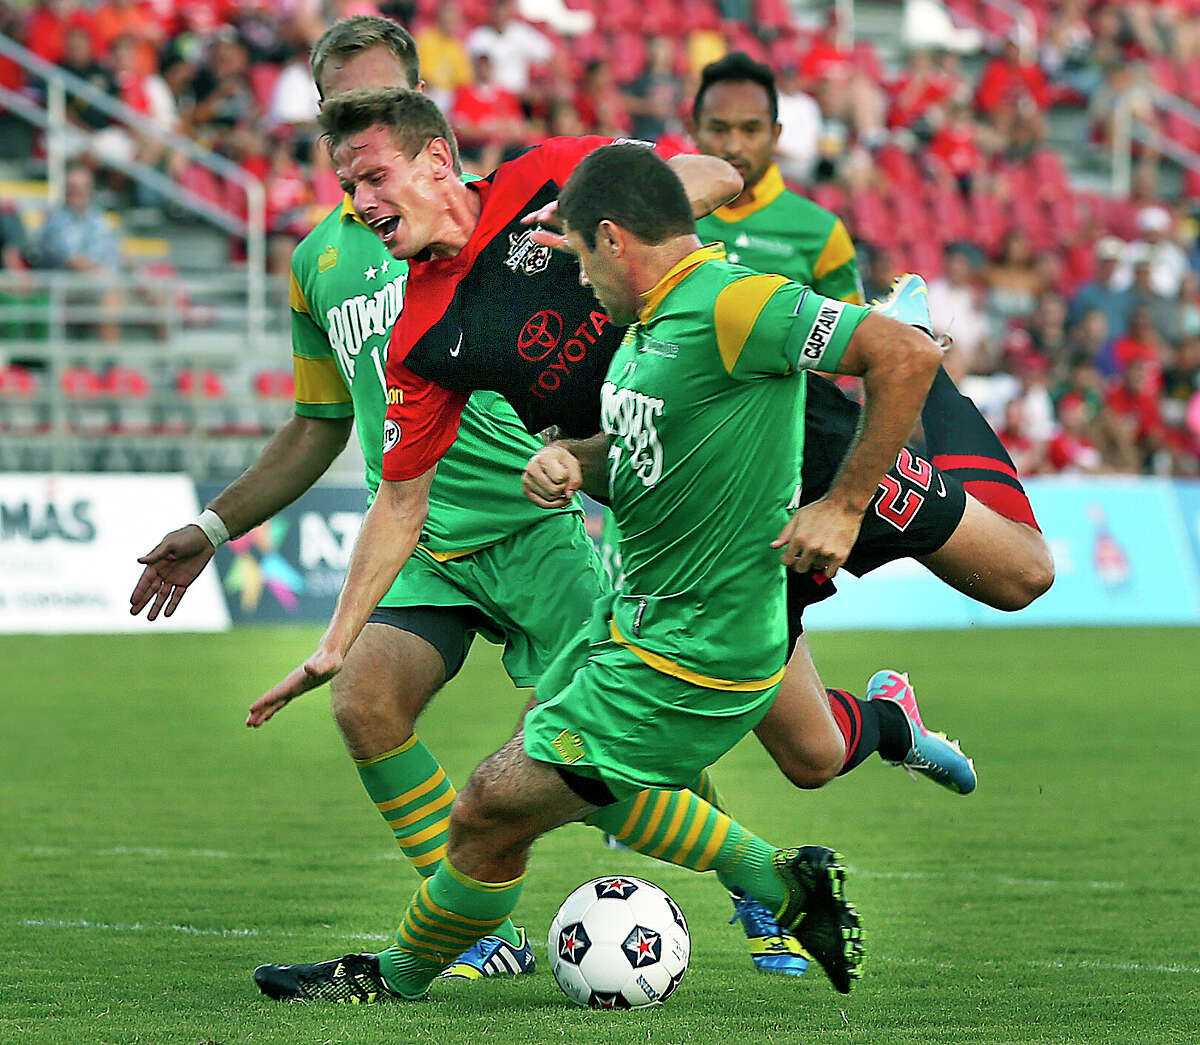 Tomasz Zahorski is stopped by a tackle in front of the goal as the San Antonio Scorpions play the Tampa Bay Rowdies at Toyota Field on August 3, 2013.